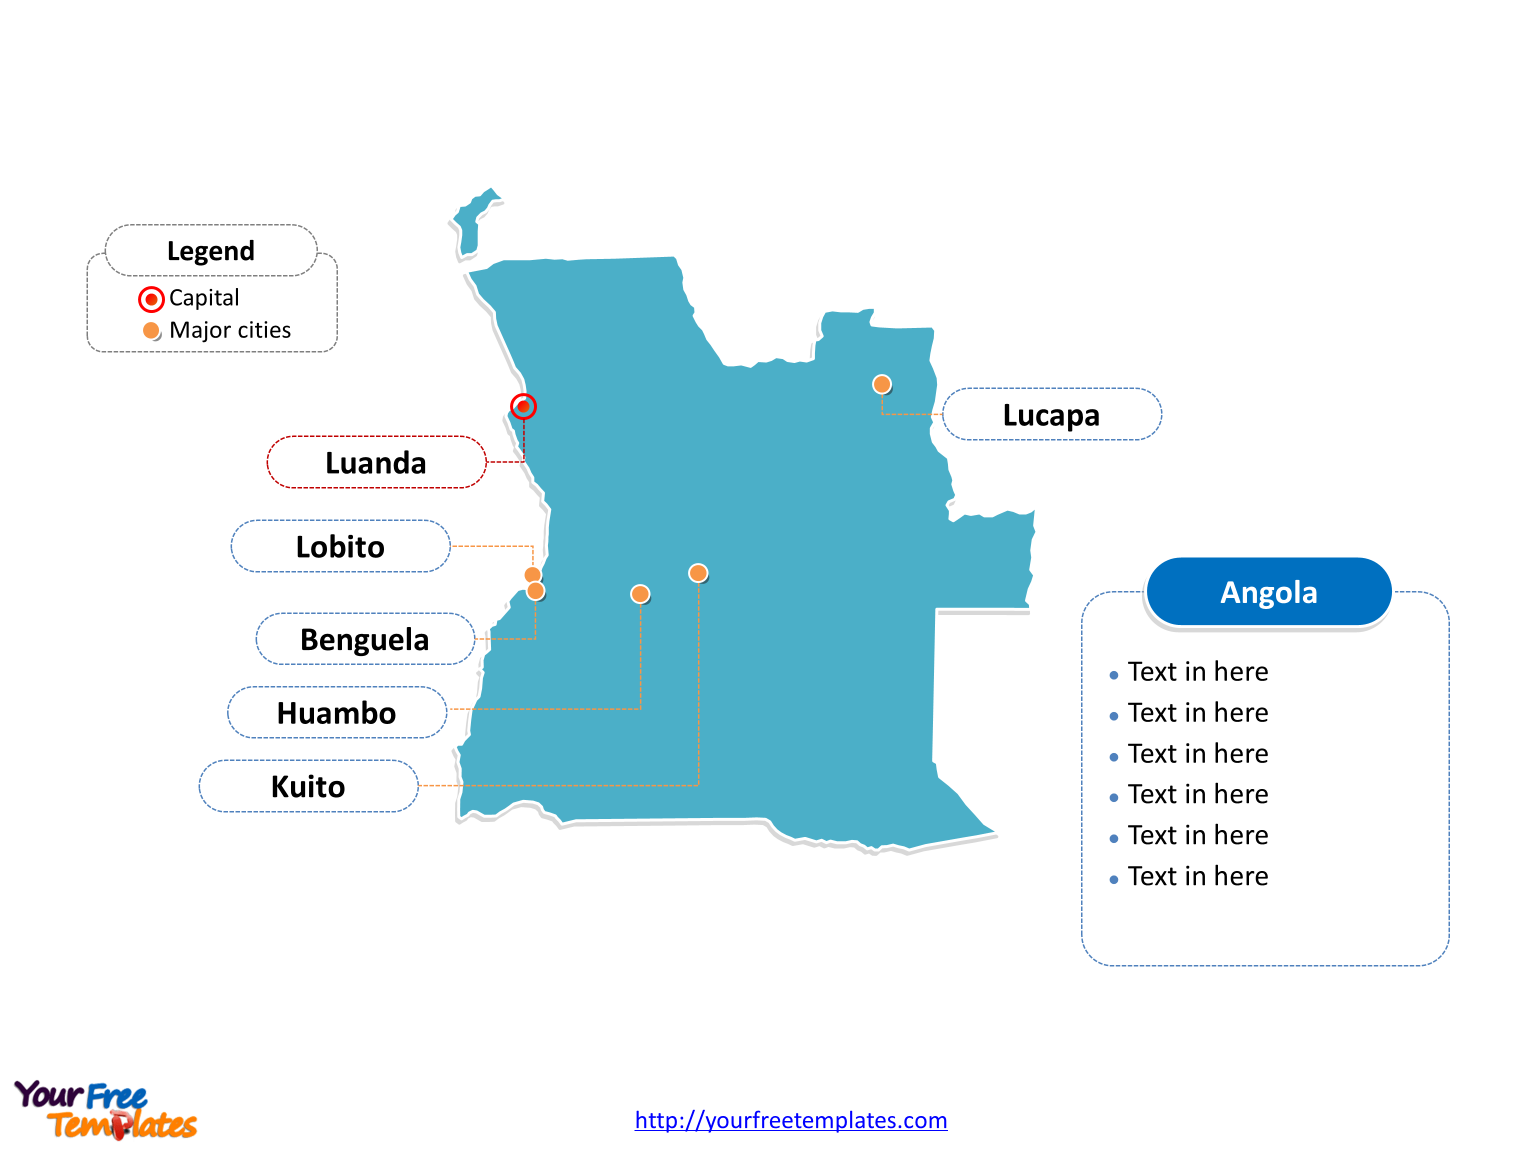 Free Angola Editable Map Free PowerPoint Templates - Angola map